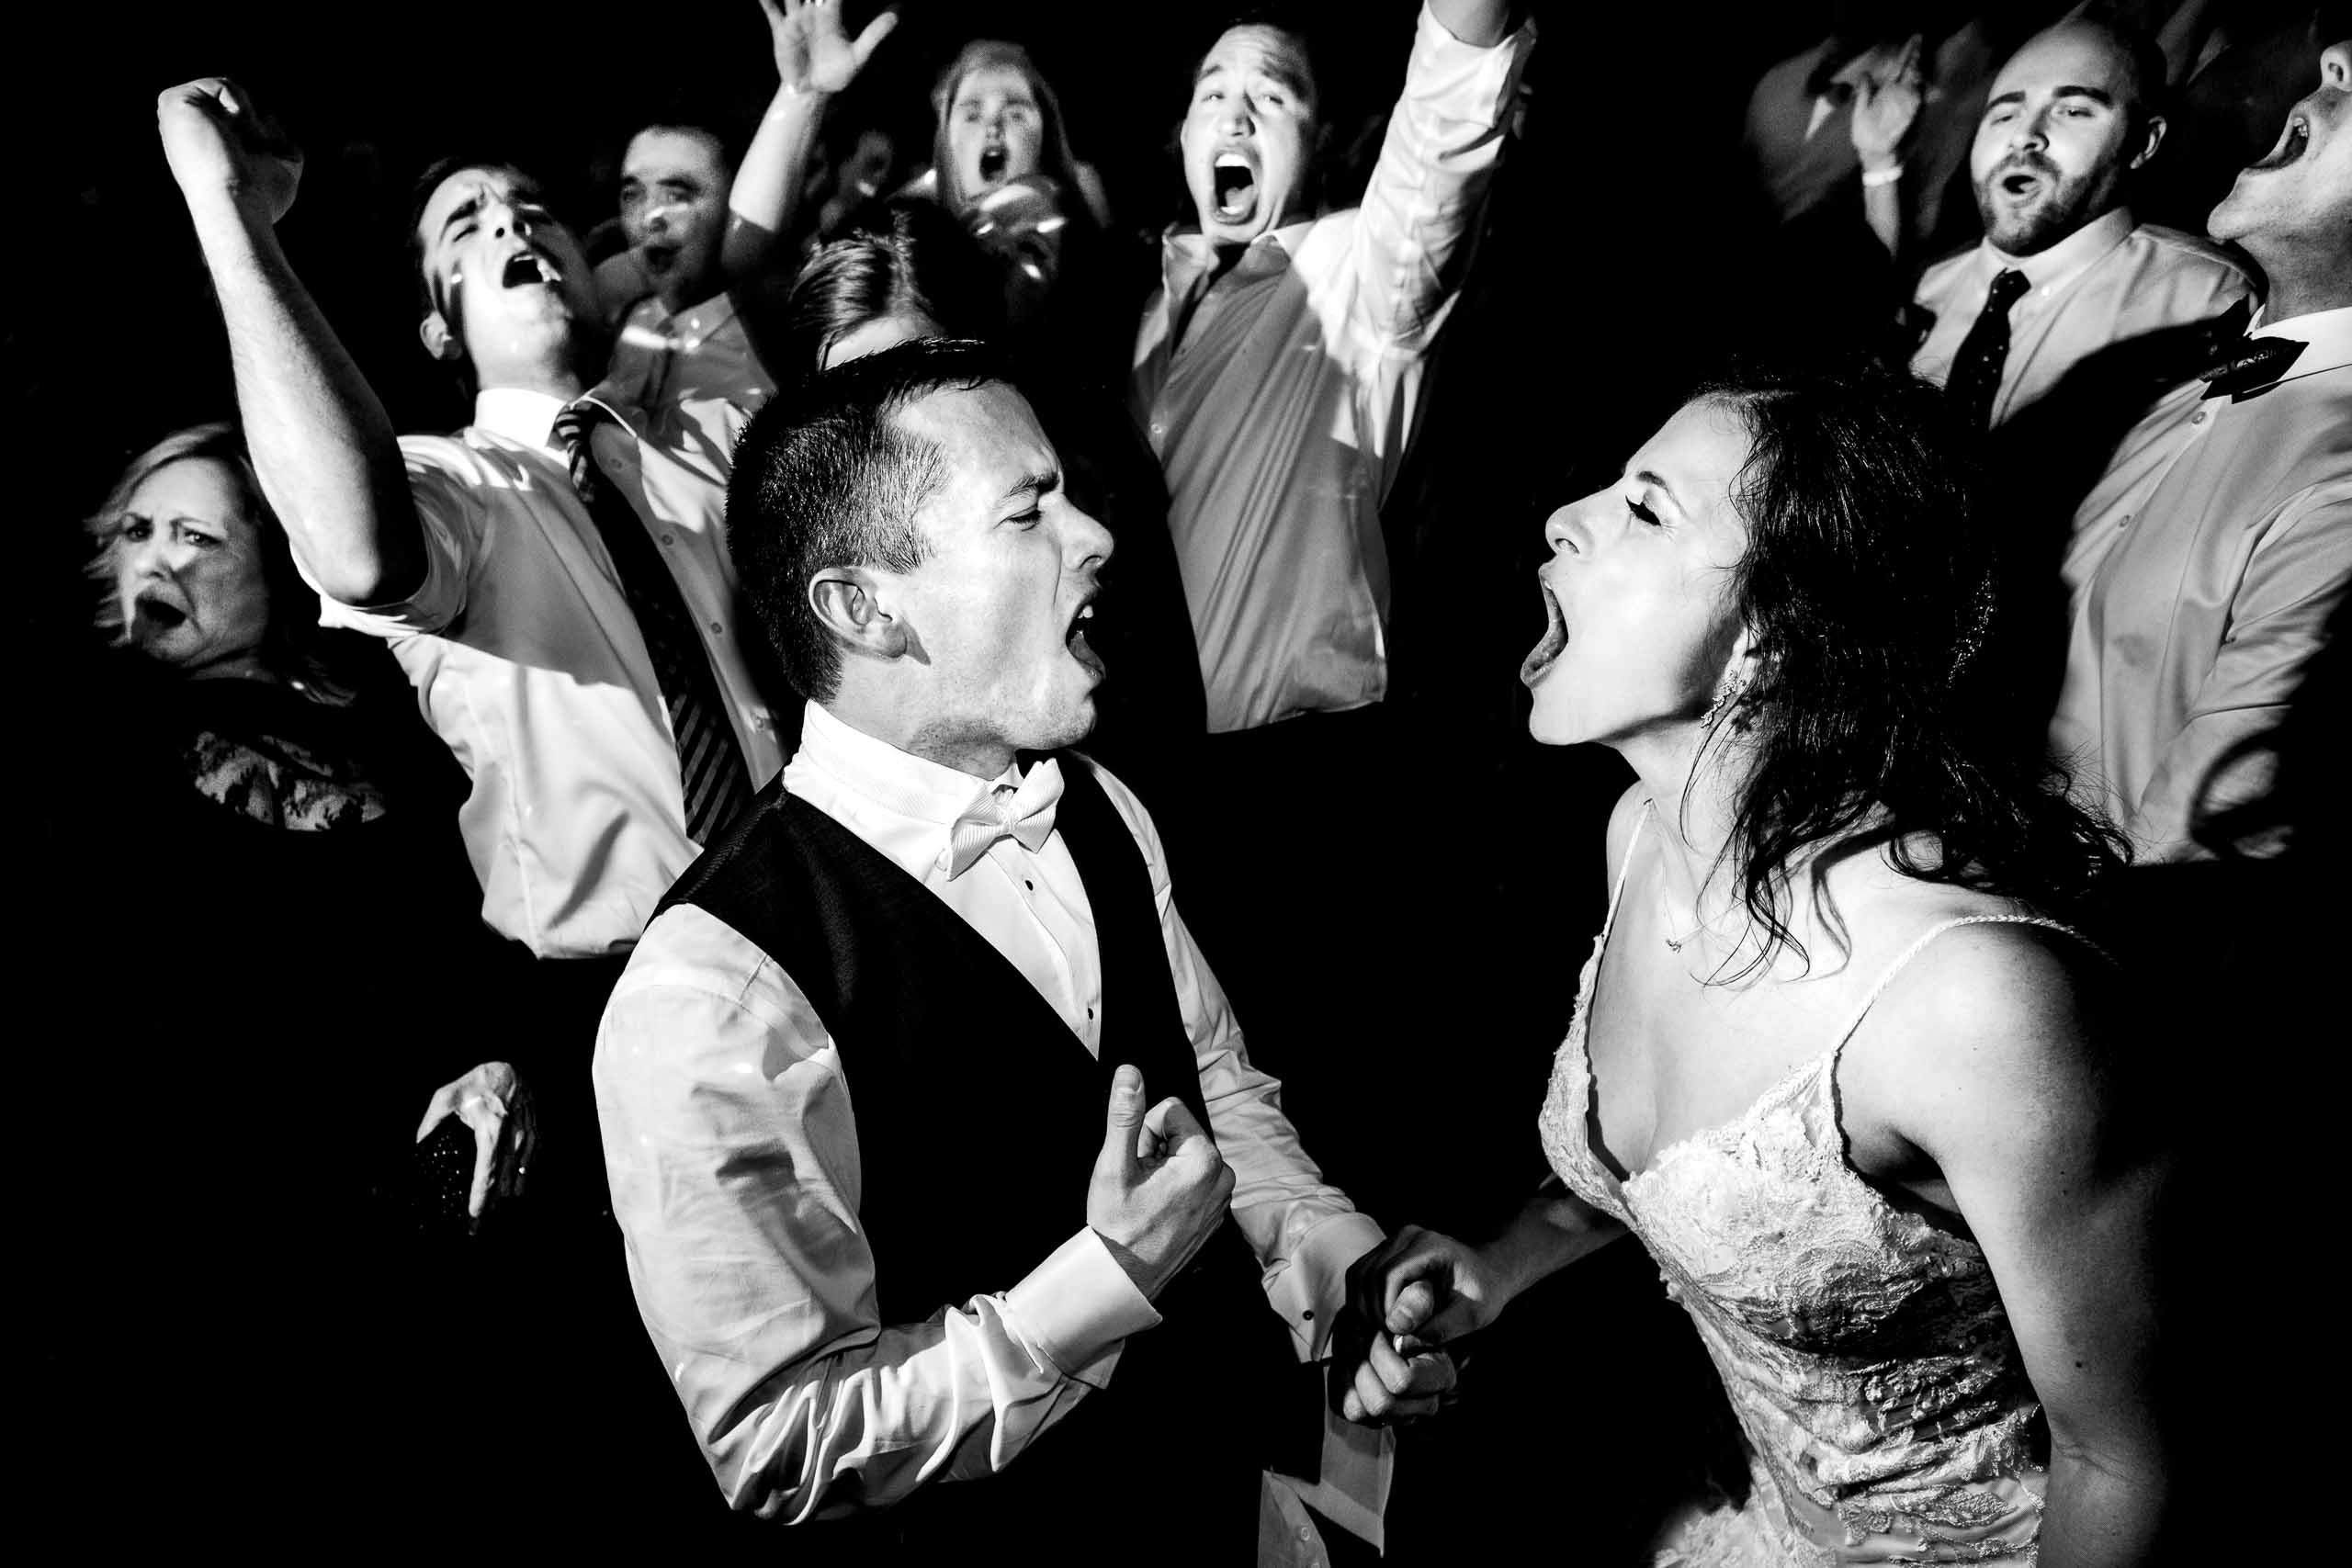 Super fun photo of a bride and groom singing and dancing during their Sunriver Resort wedding reception in Oregon